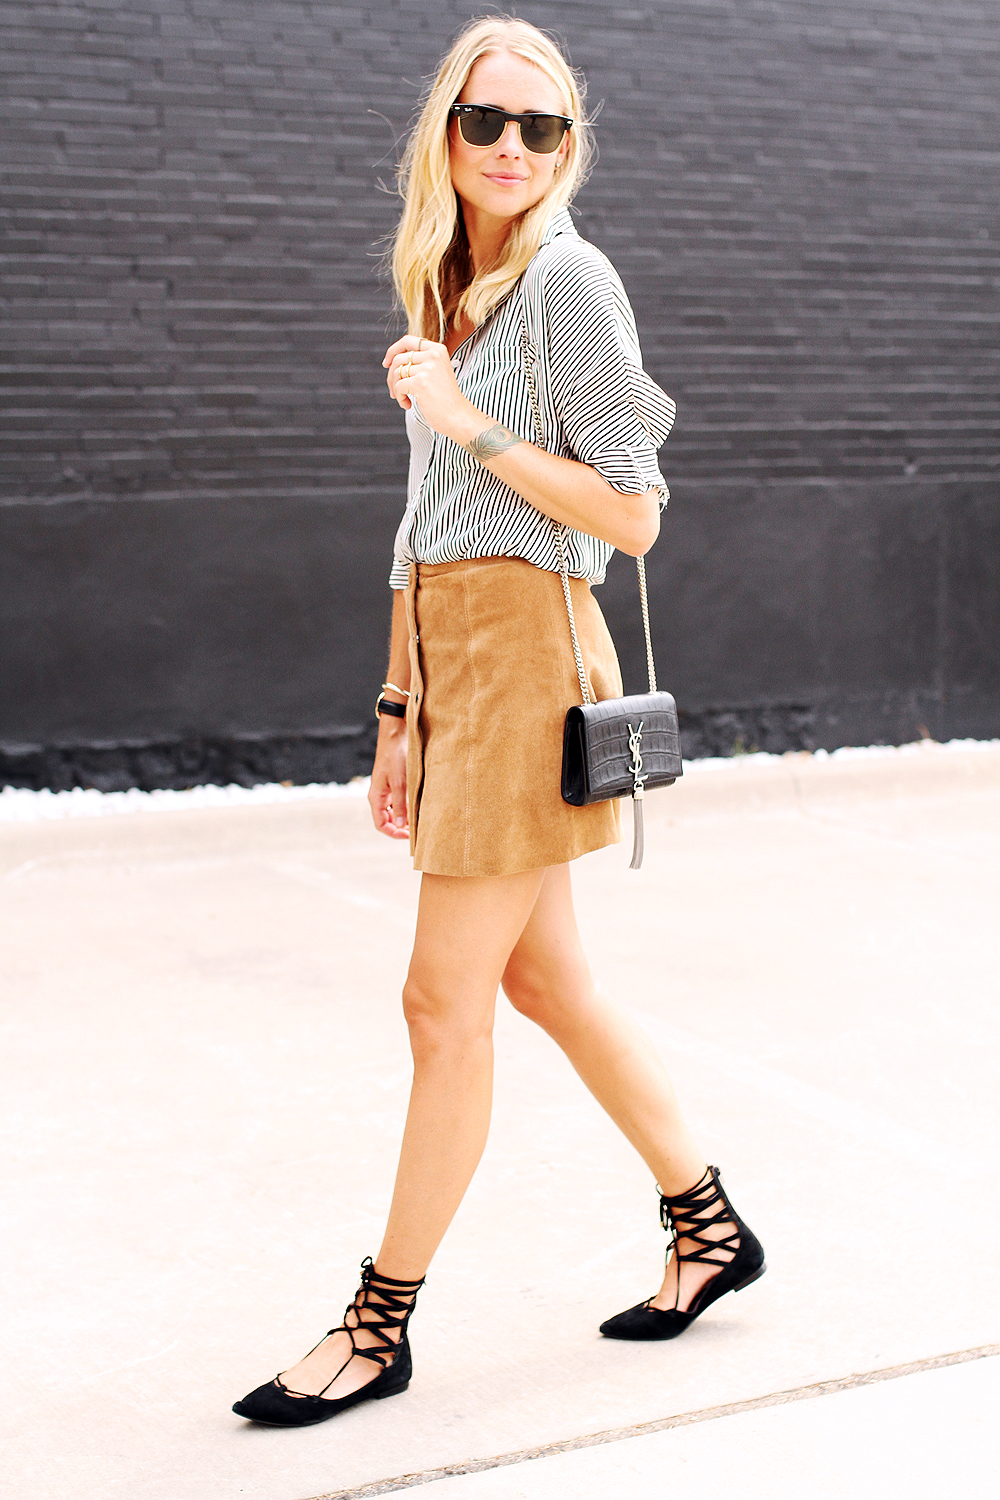 fashion-jackson-rayban-sunglasses-ysl-cassandre-crossbody-topshop-tan-suede-button-front-skirt-jeffery-campbell-black-lace-up-flats-black-and-white-stripe-shirt